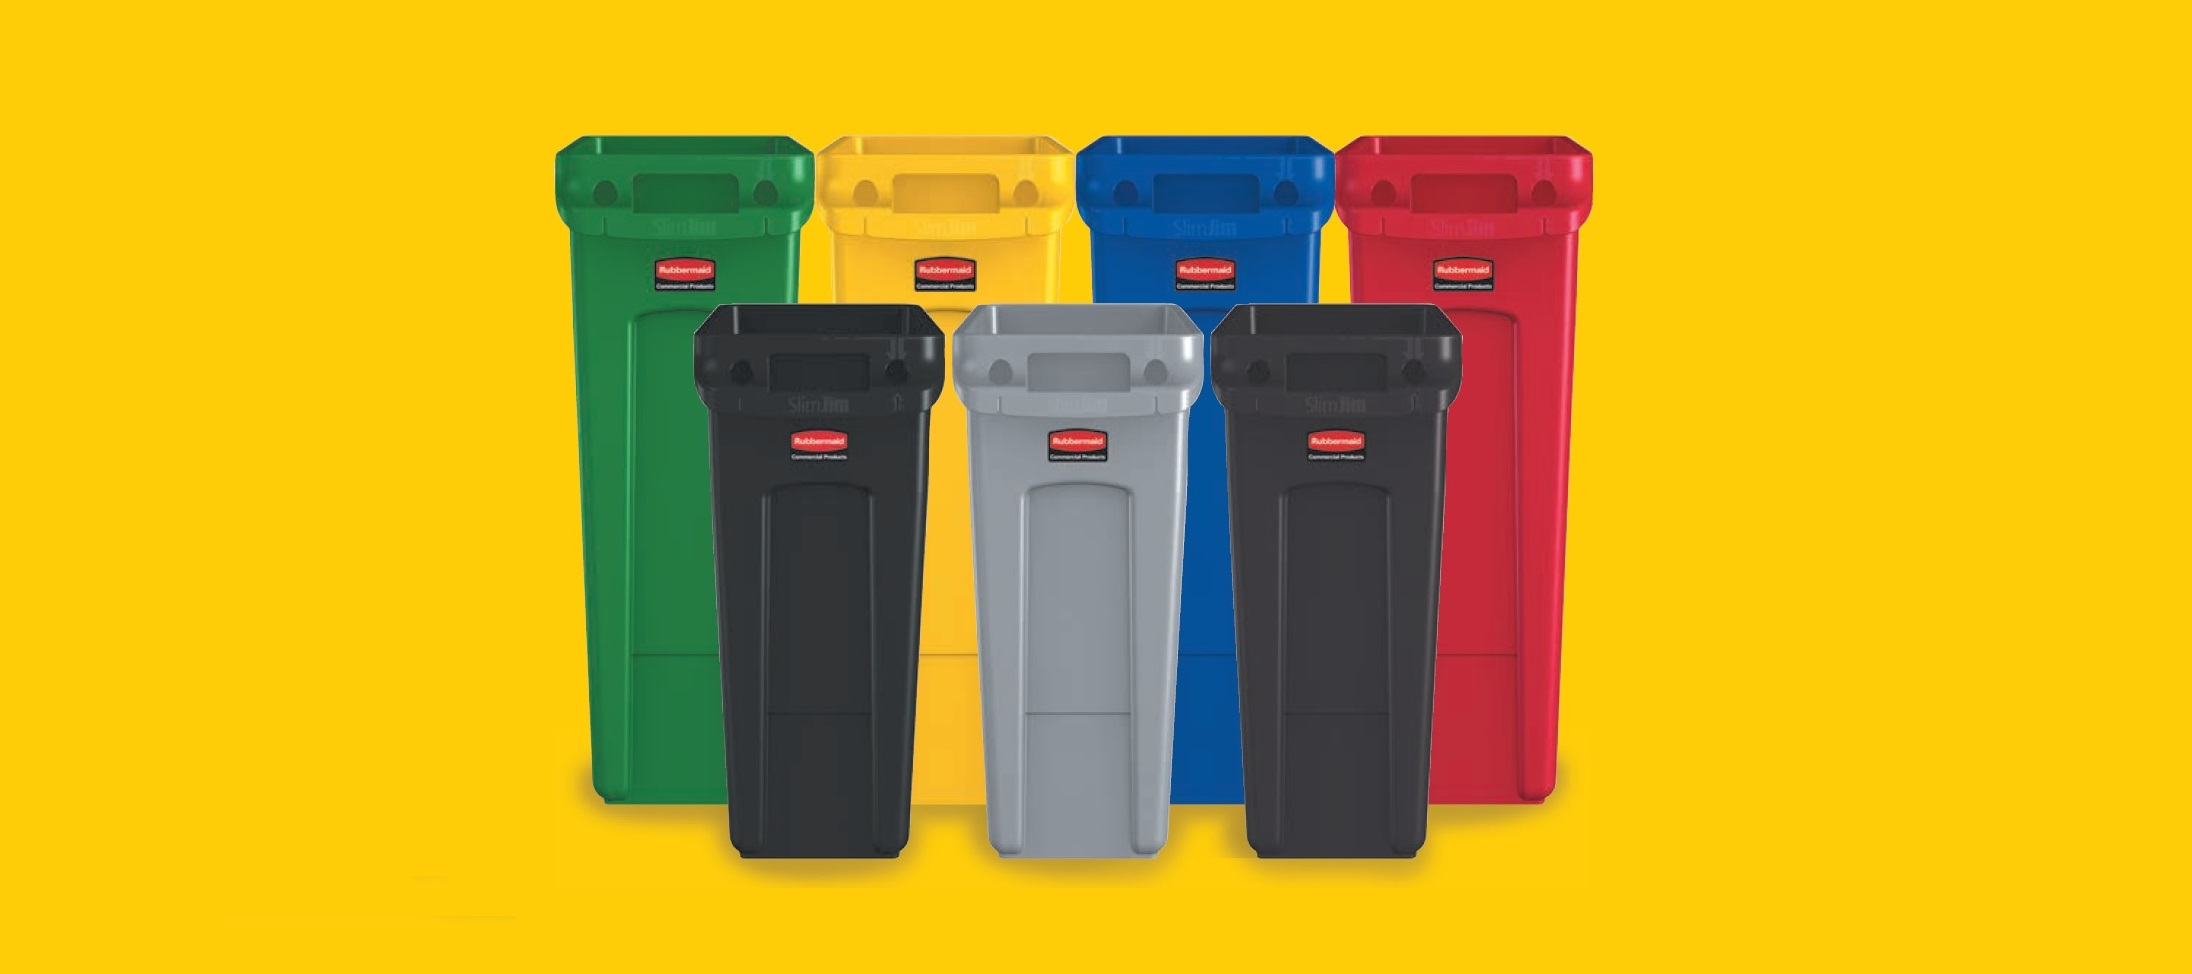 Slim Jim Container Bins